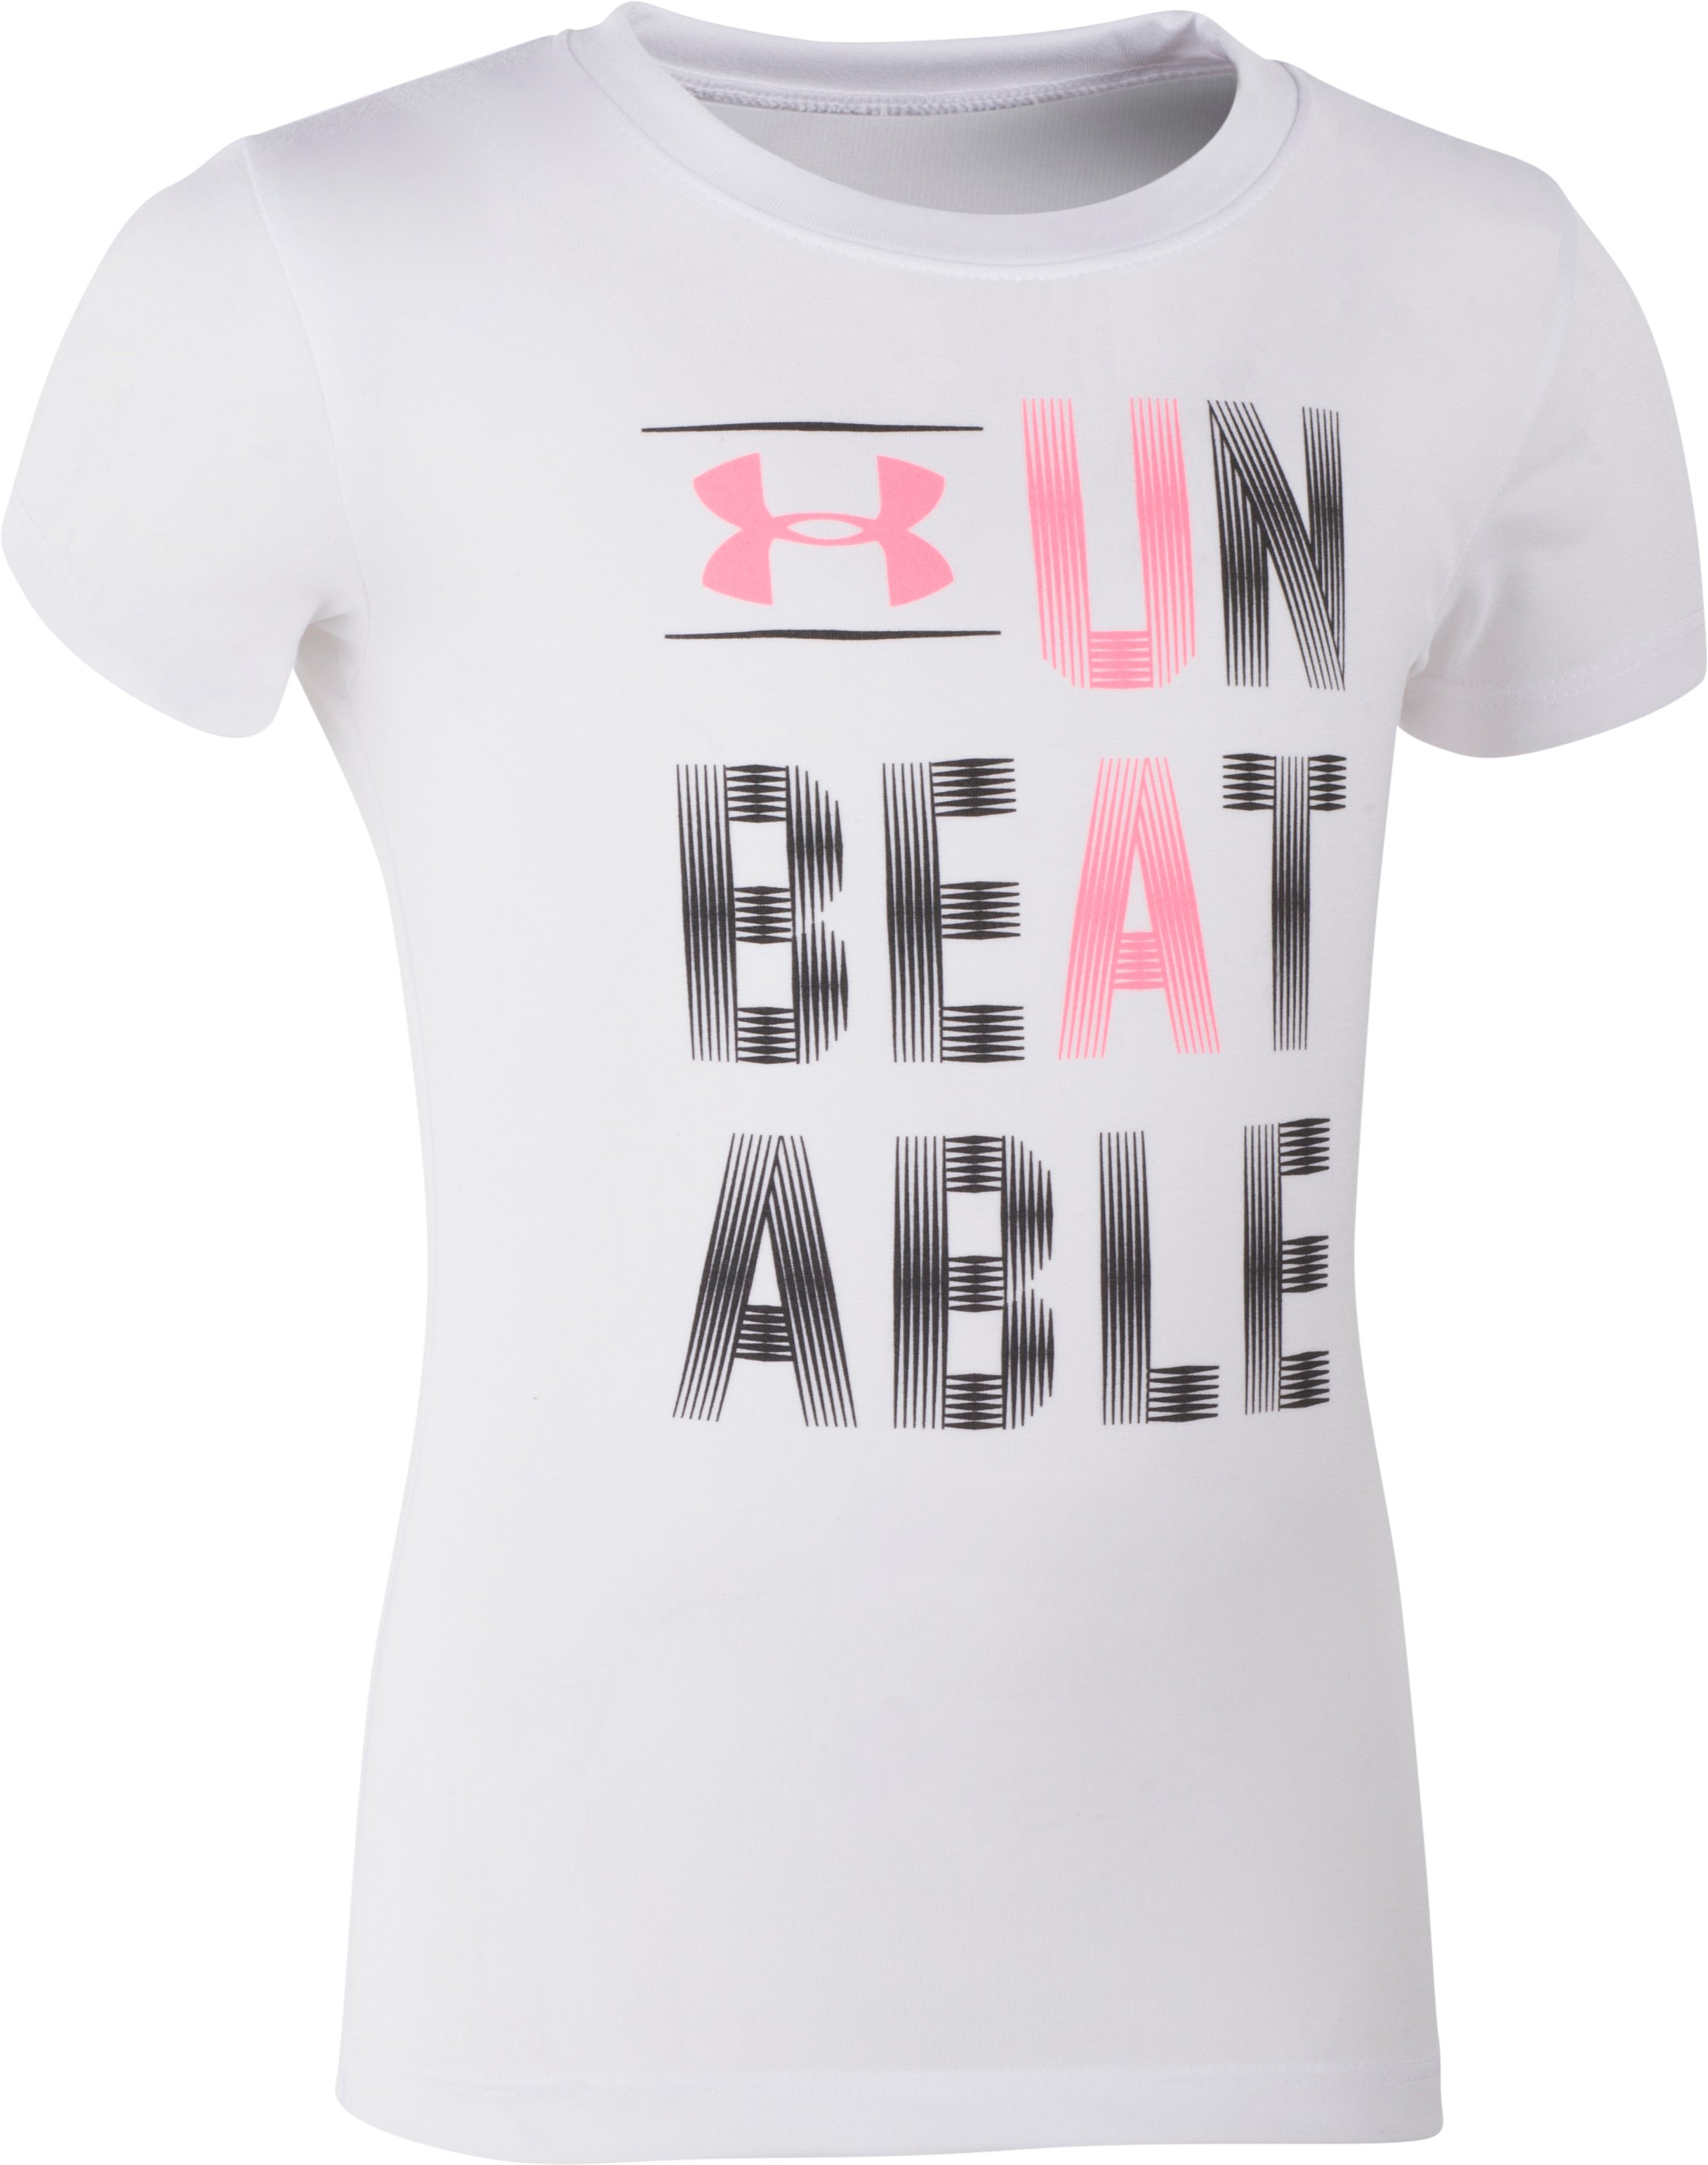 Girls' Pre-School UA Unbeatable T-Shirt, White, zoomed image